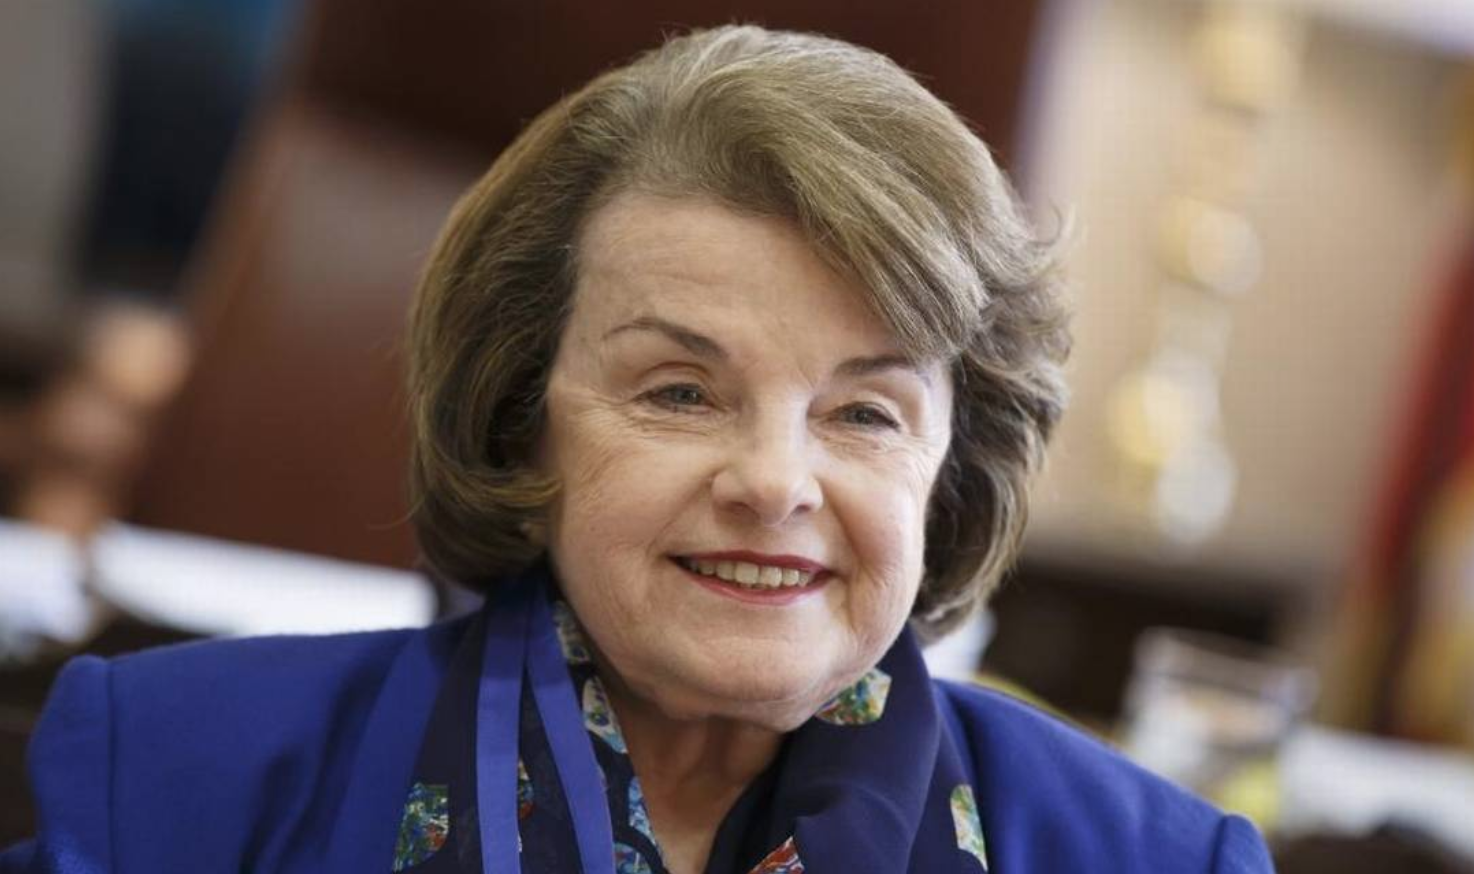 Sen. Dianne Feinstein says California's farms will be harshly affected by a trade war with China. J. Scott Applewhite AP